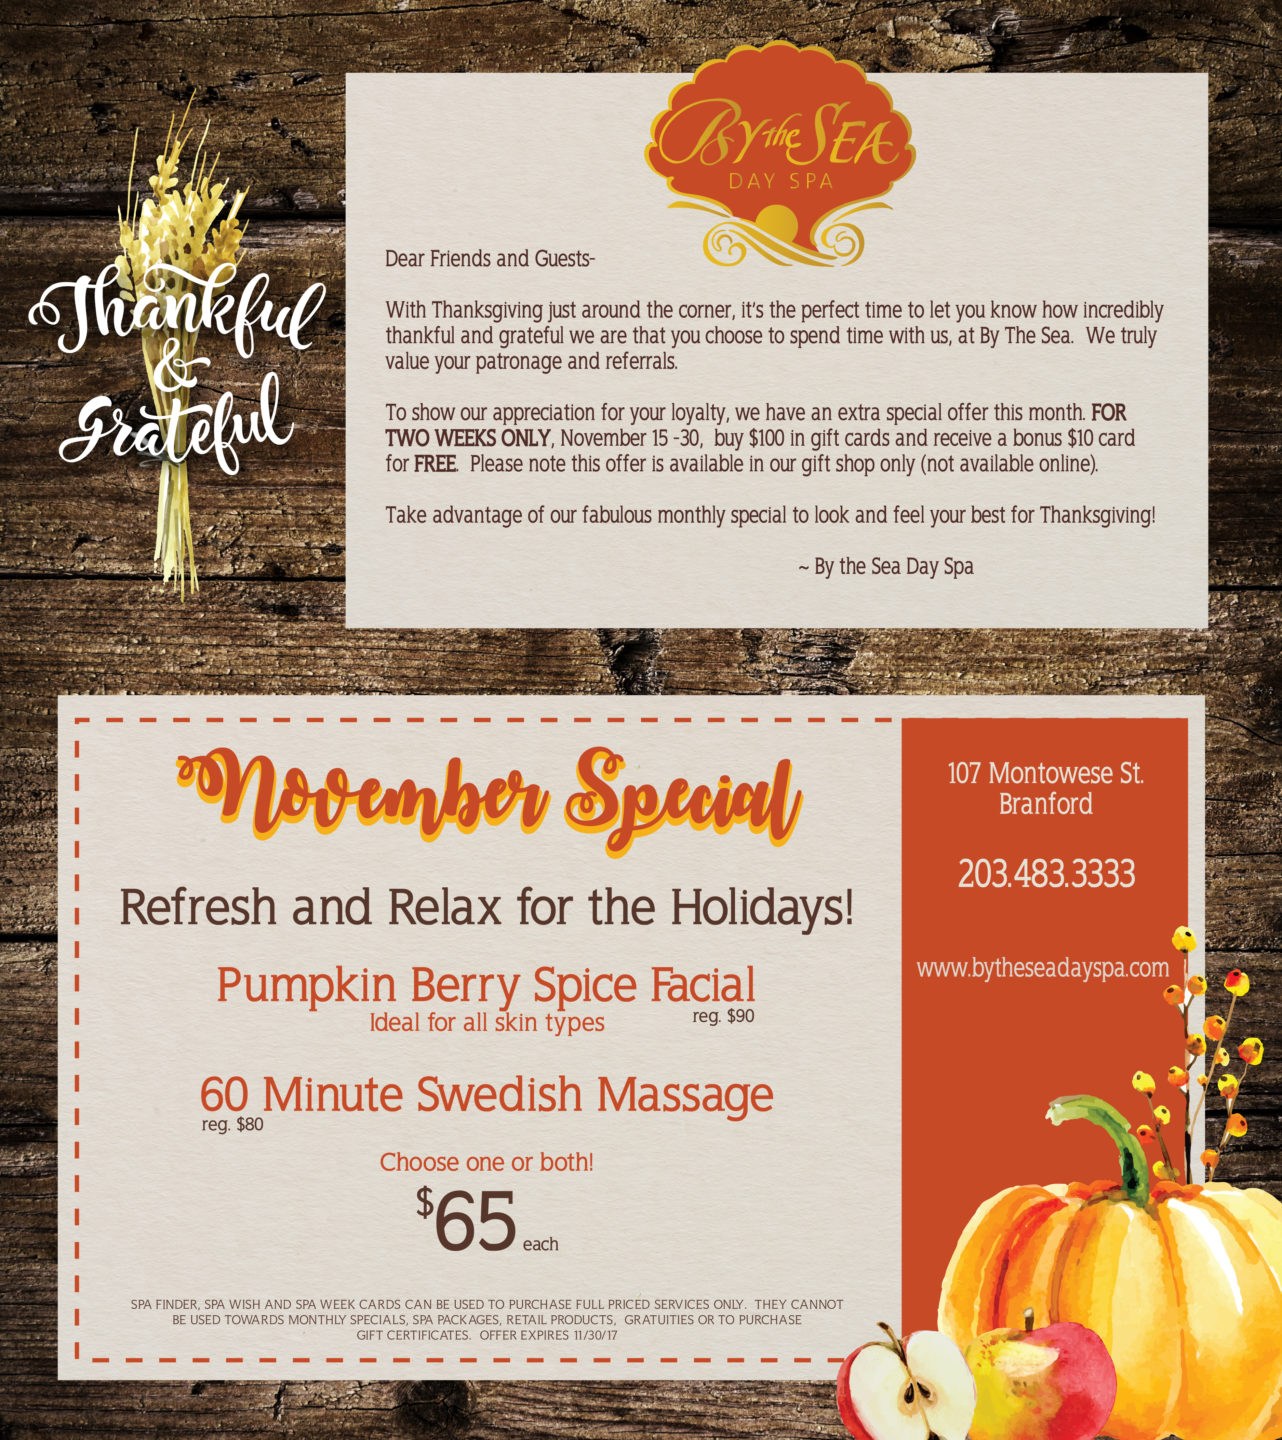 By The Sea Day Spa - November 2017 Monthly Special